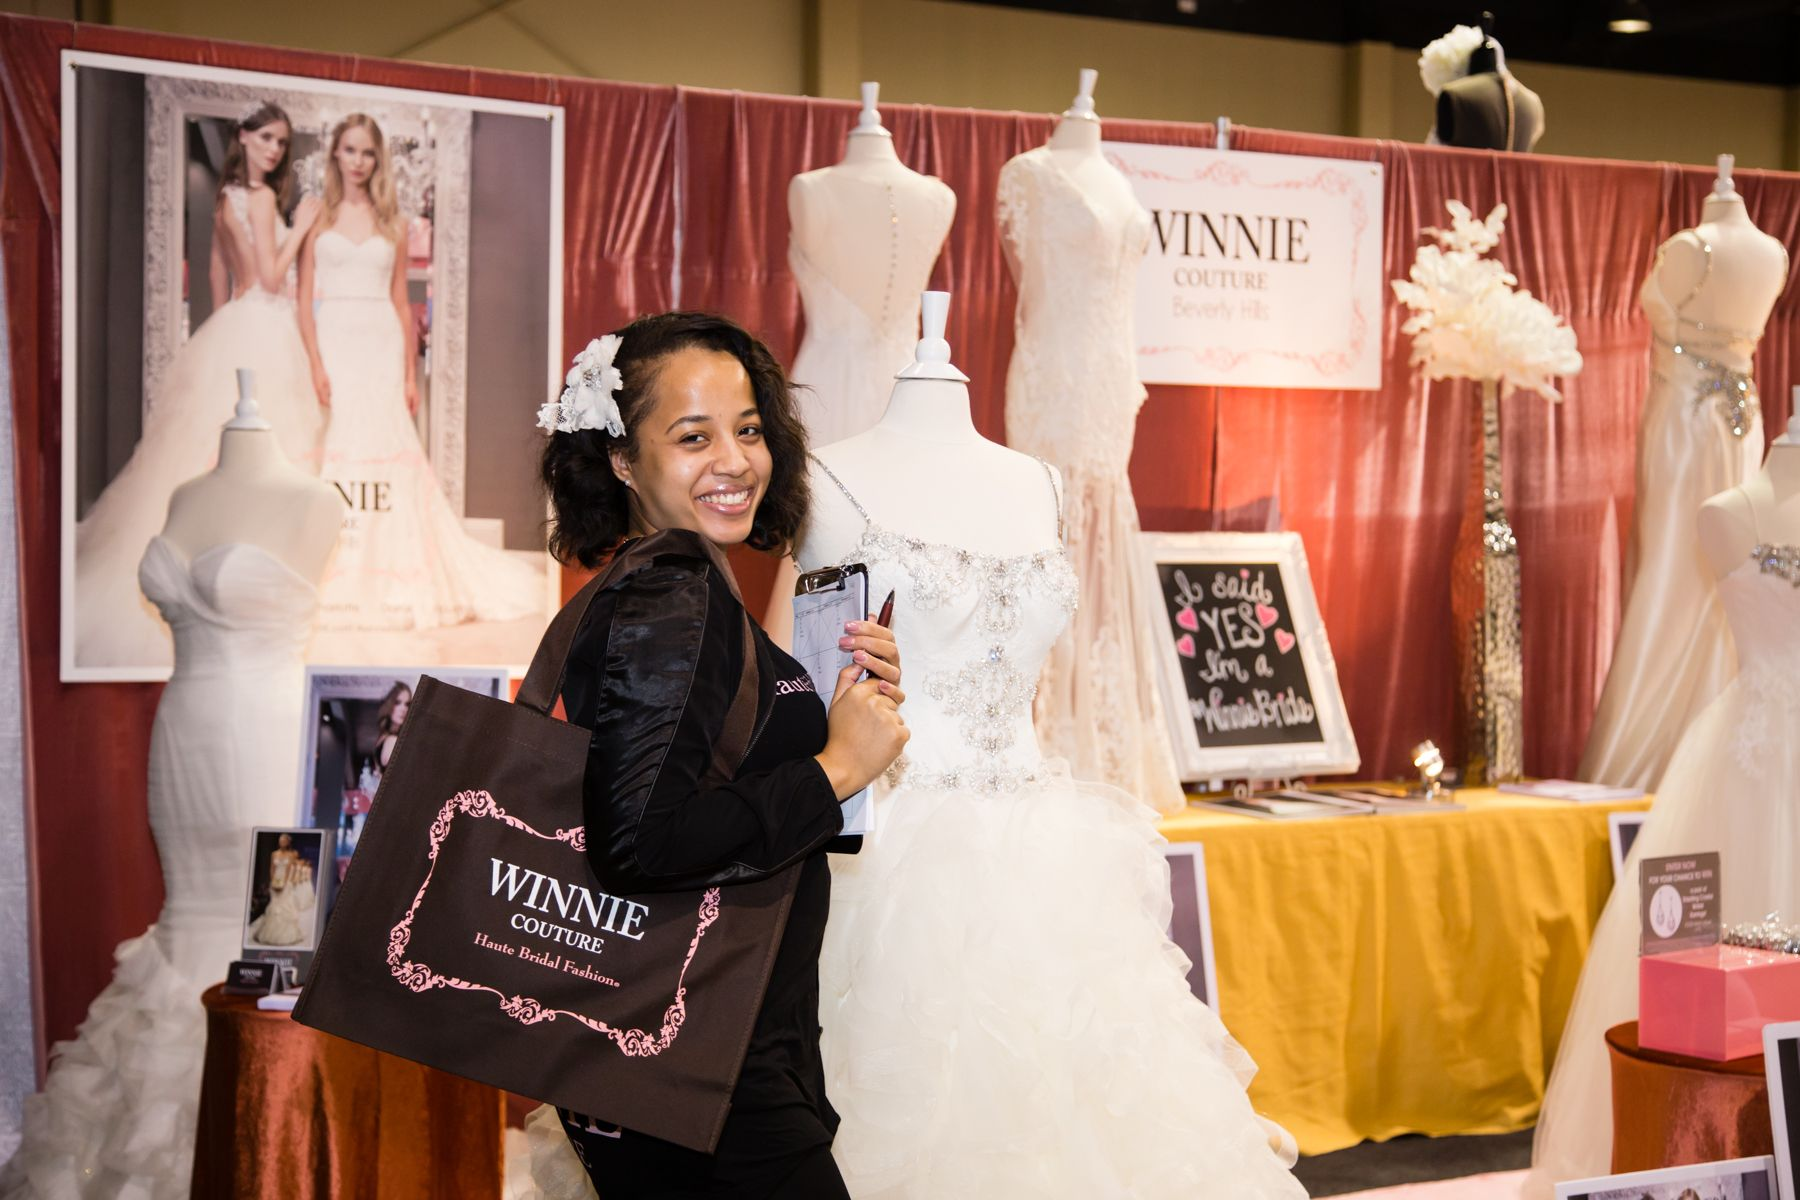 @winniecouture at the Georgia Bridal Show on 1/31 at the Infinite Energy Forum